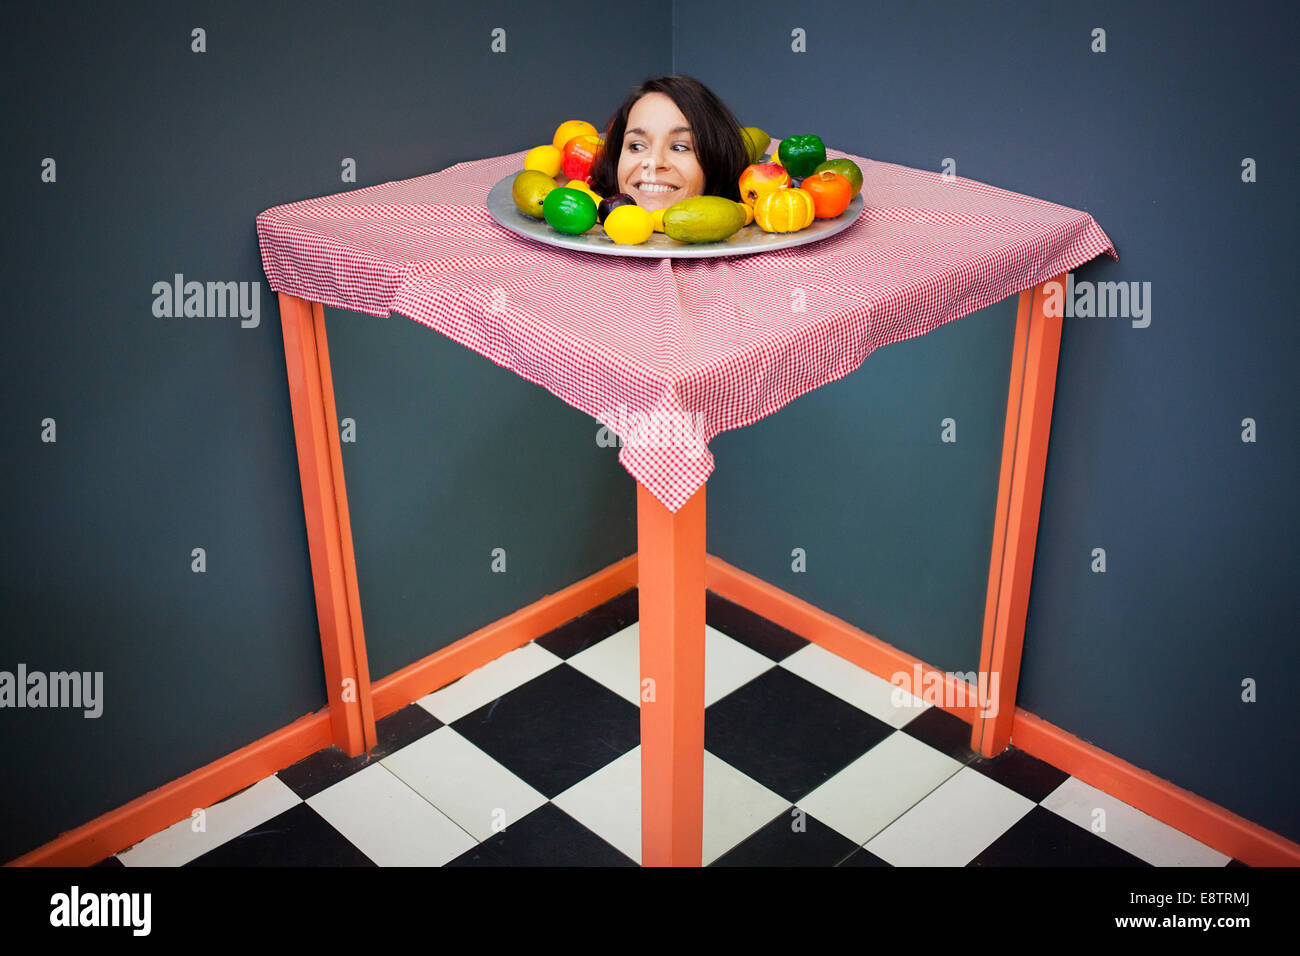 A Woman Is Part Of An Optical Illusion, Cape Town Science Centre   Stock  Image